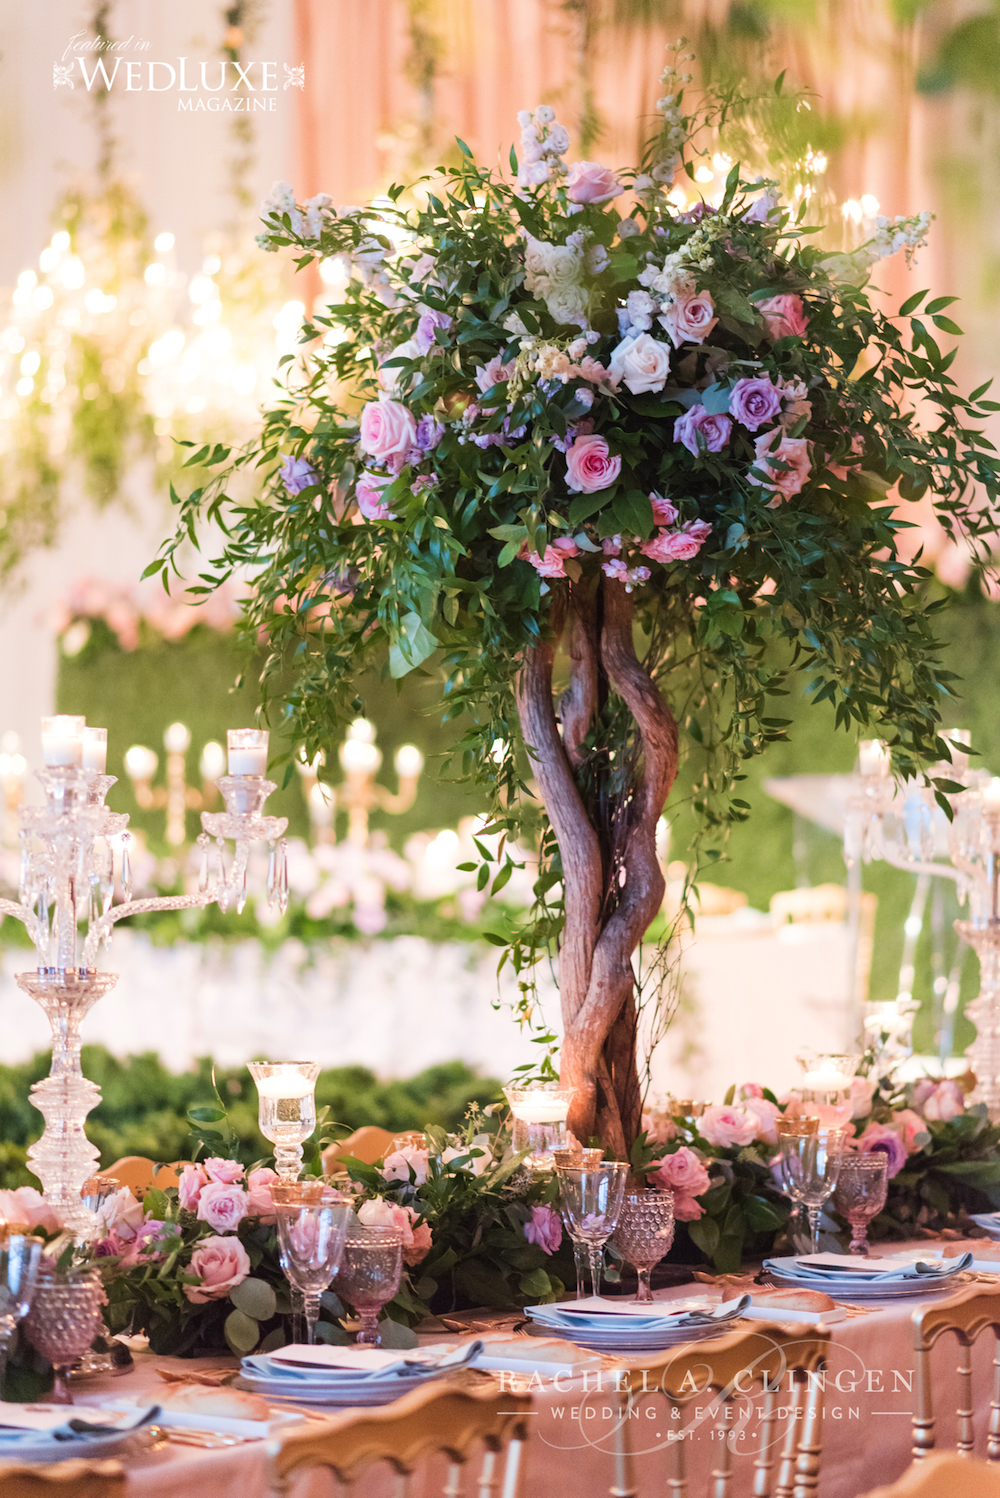 Enchanted weddings archives wedding decor toronto rachel for Floral table decorations